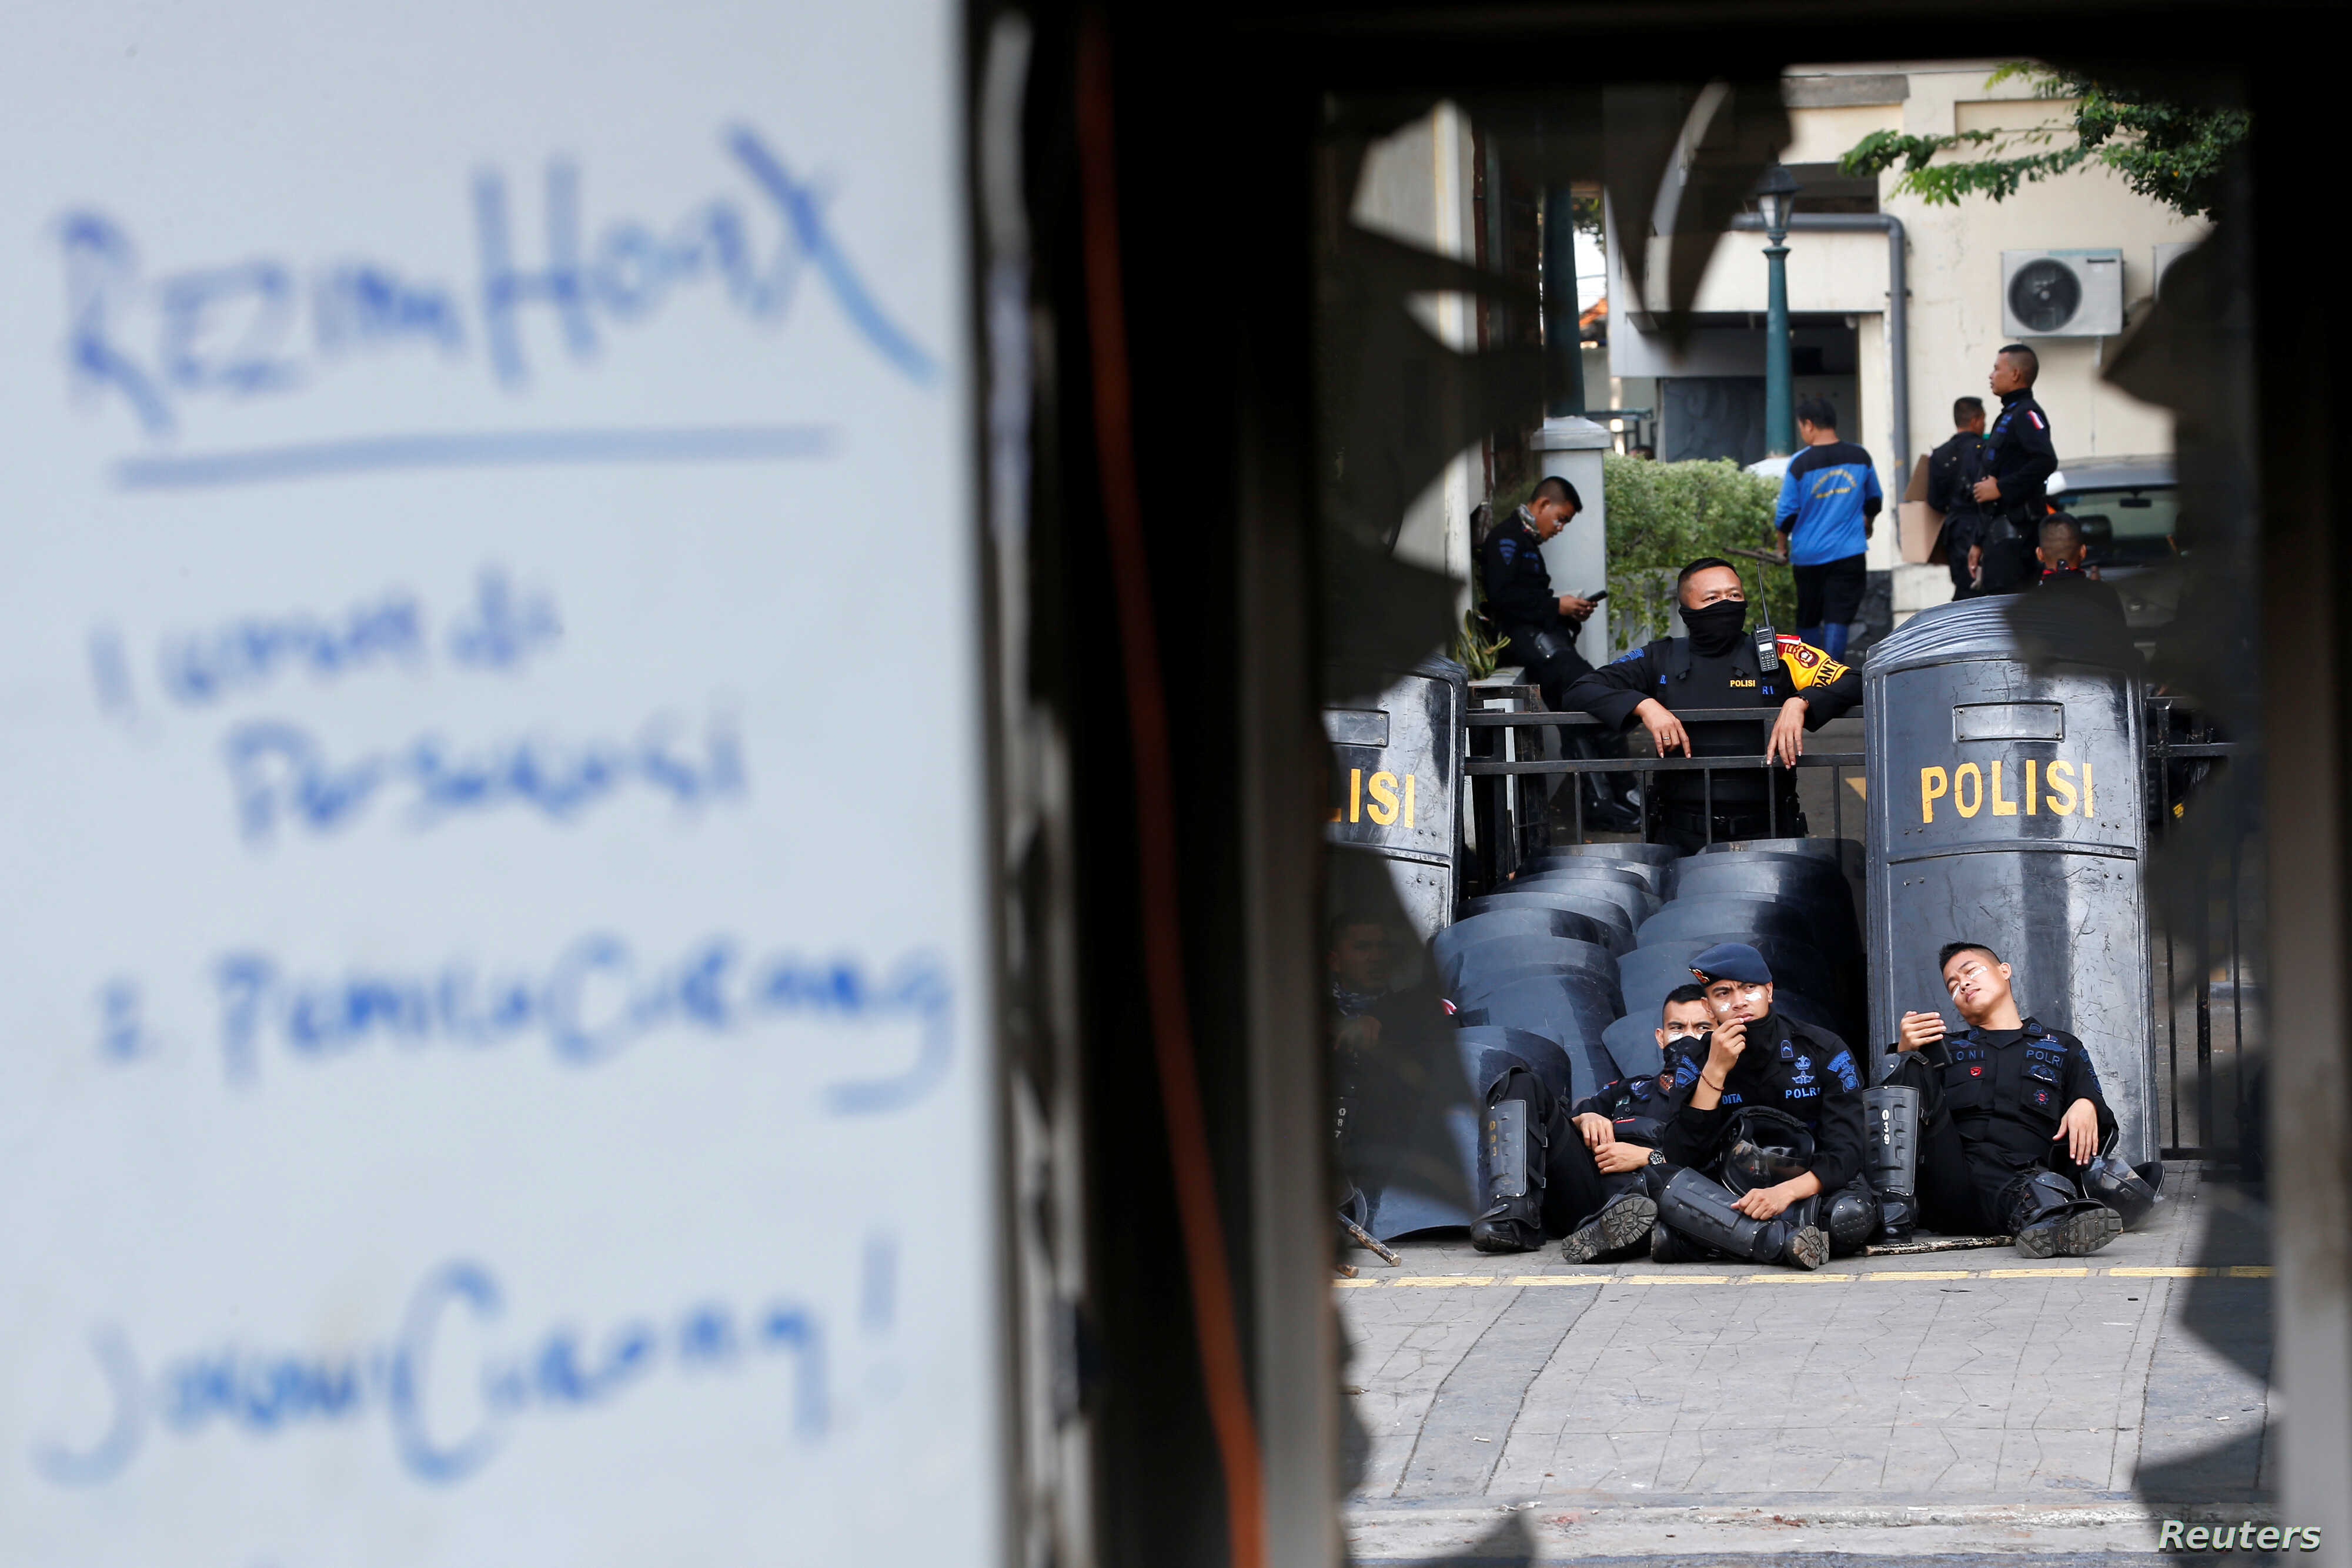 Mobile brigade (Brimob) police officers take a rest near a damaged police station after riots following the announcement of last month's presidential election results outside the Election Supervisory Agency (Bawaslu) headquarters in Jakarta, Indonesi...